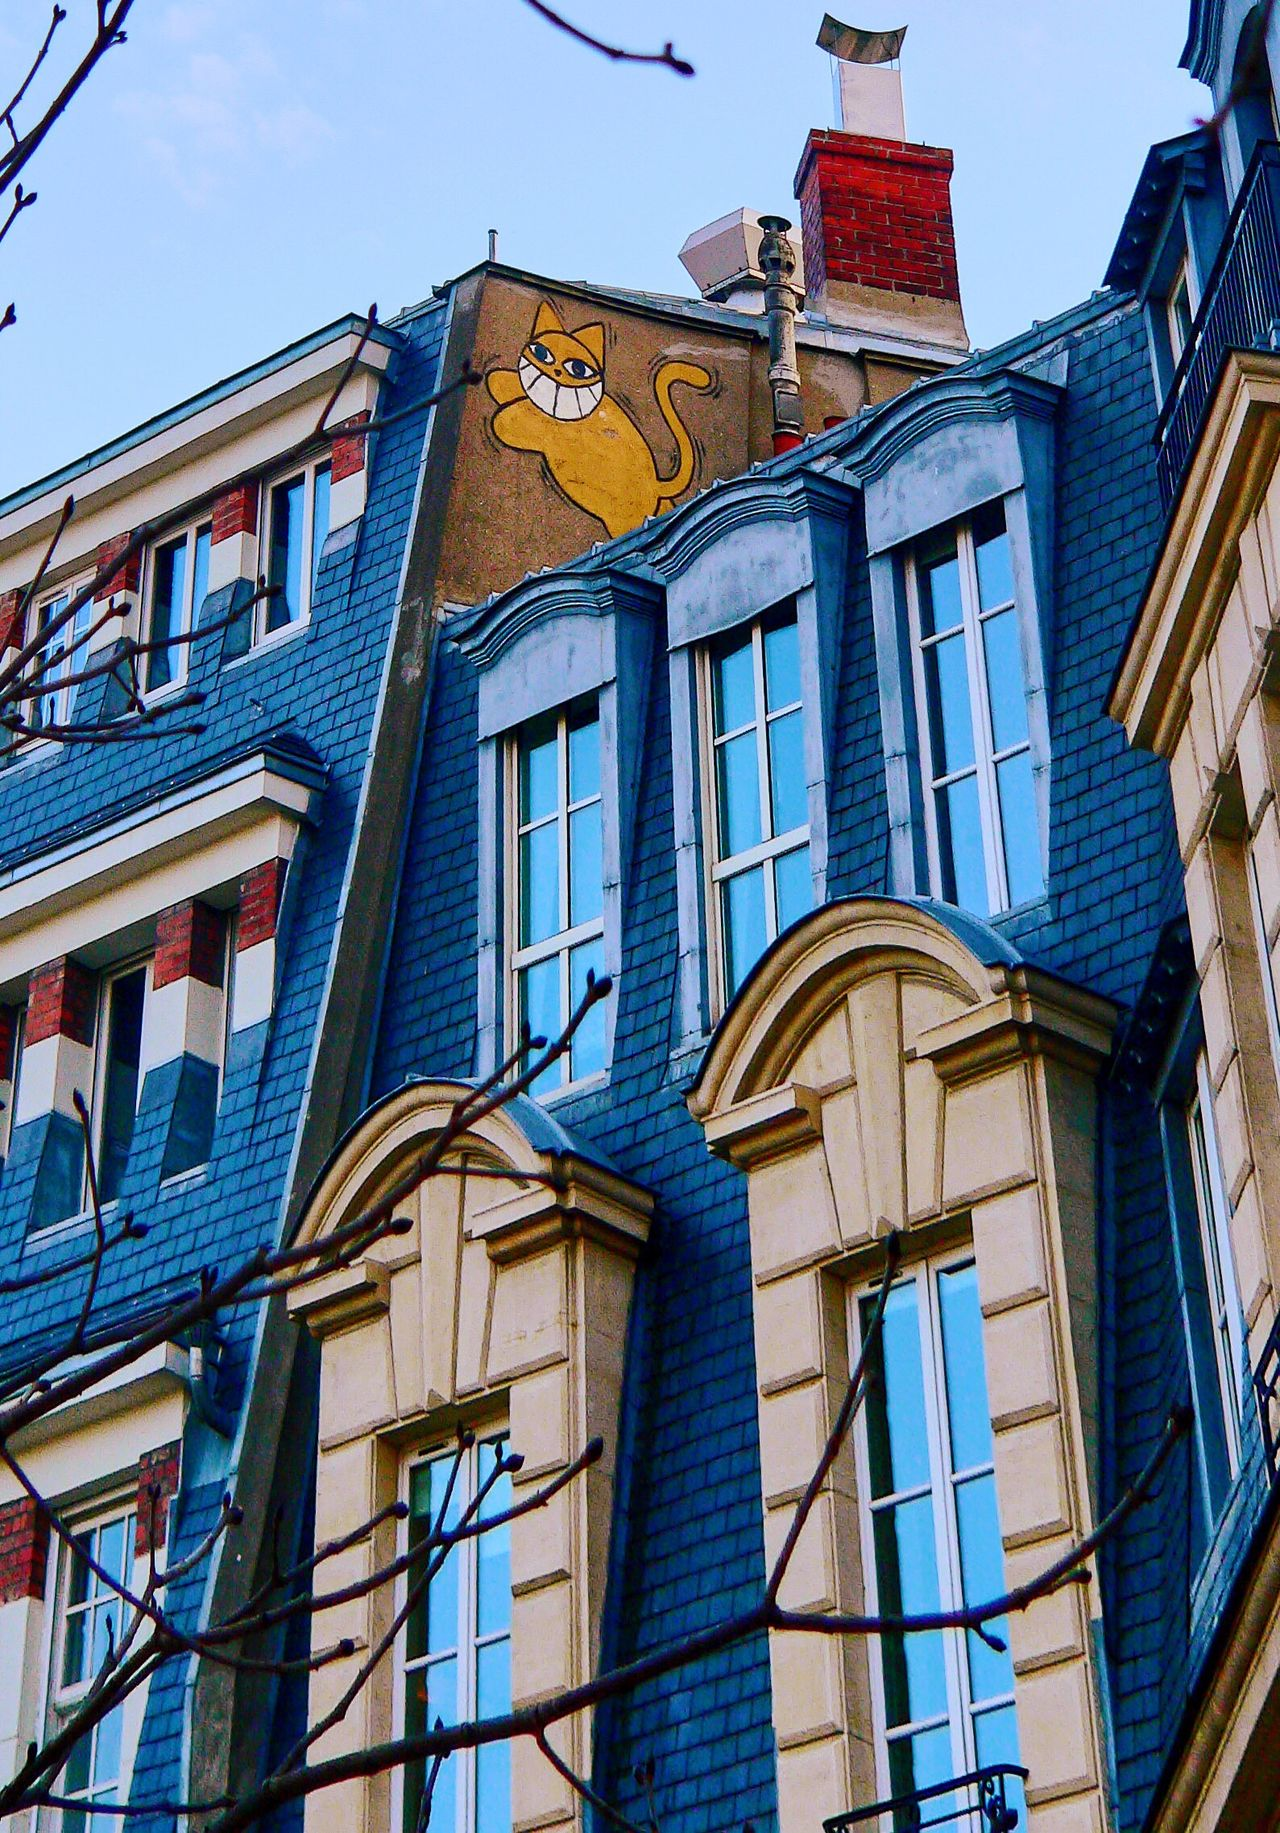 Building Exterior Architecture Built Structure Window Low Angle View Blue No People Outdoors Sky Day Streetphotography Street Art Street Art/Graffiti Cat Smiley Cat Cheshire Cheshire Cat Walk Paris Promenade Photooftheday The Architect - 2017 EyeEm Awards Neighborhood Map